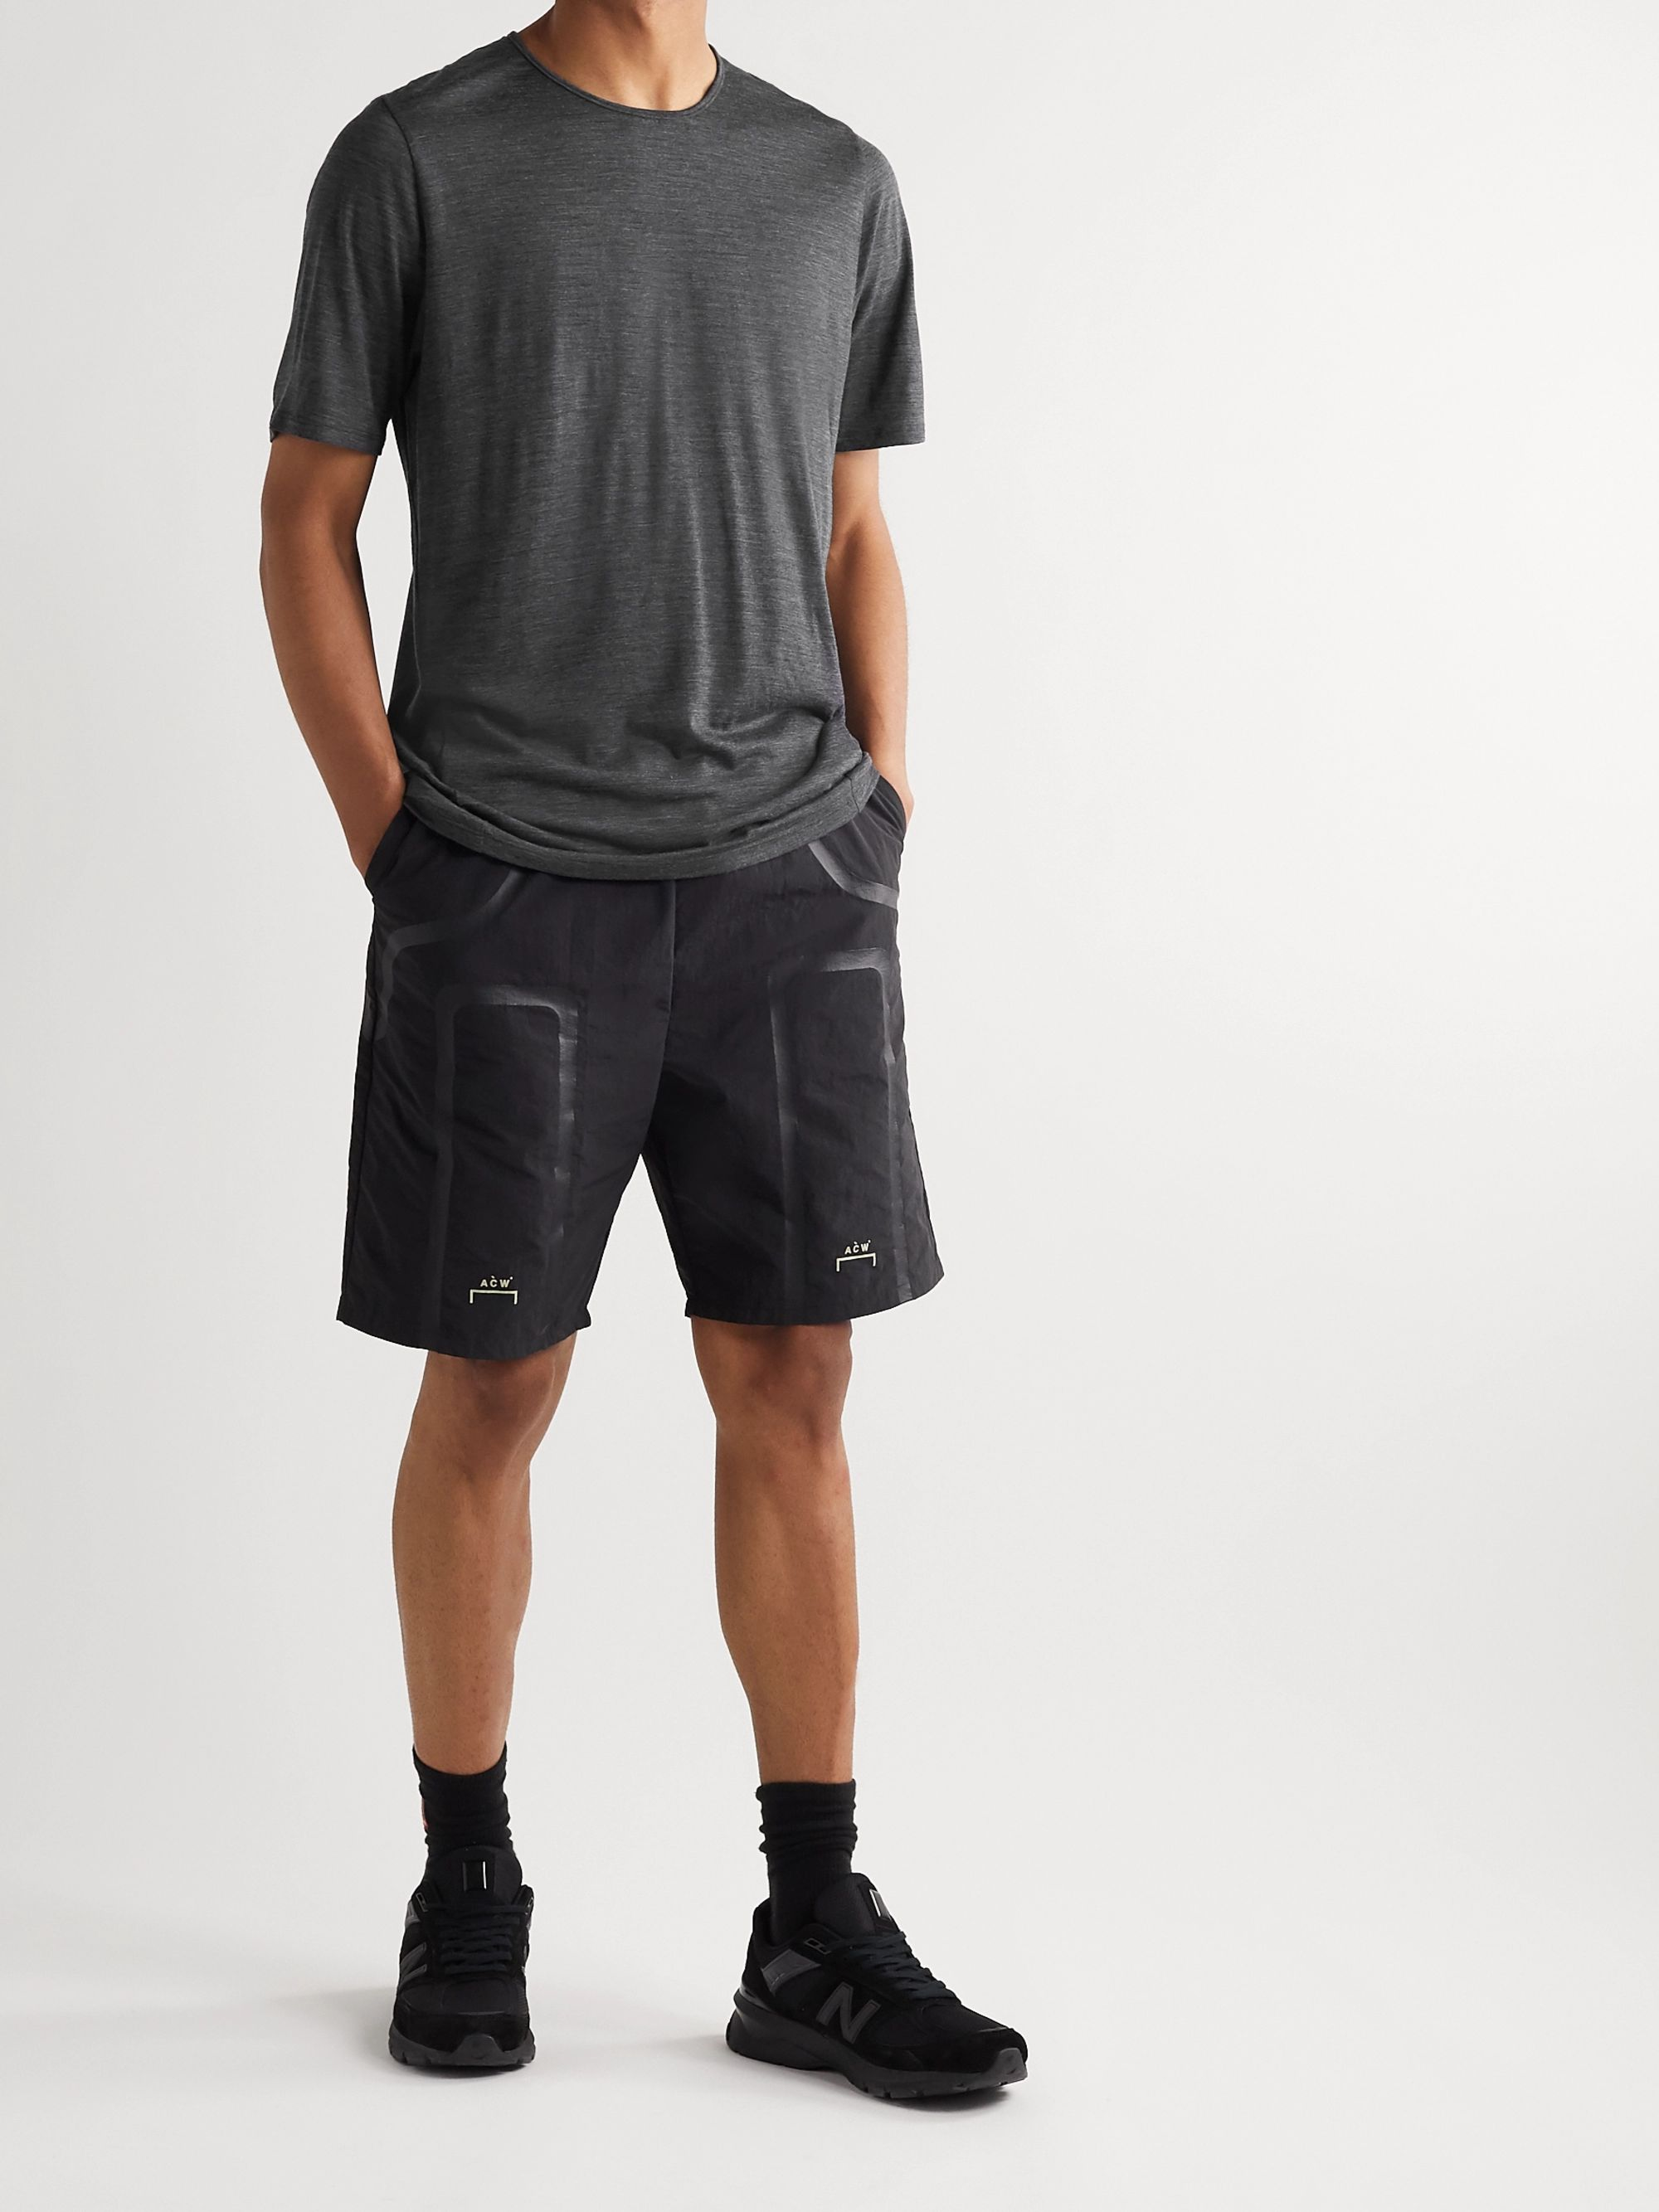 Veilance Frame Mélange Wool and Nylon-Blend Jersey T-Shirt